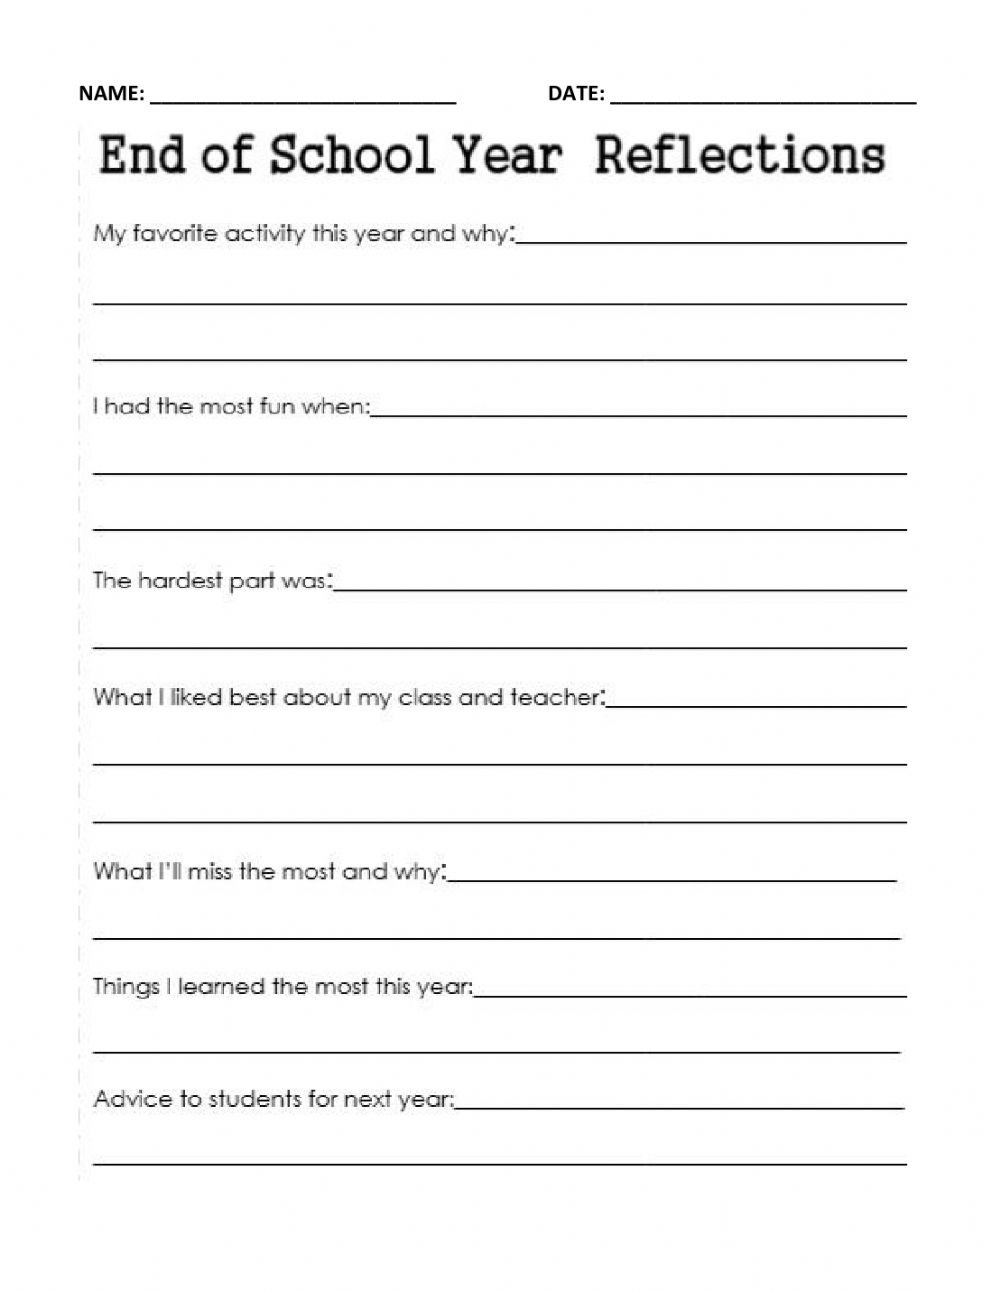 End of Year School Reflection worksheet